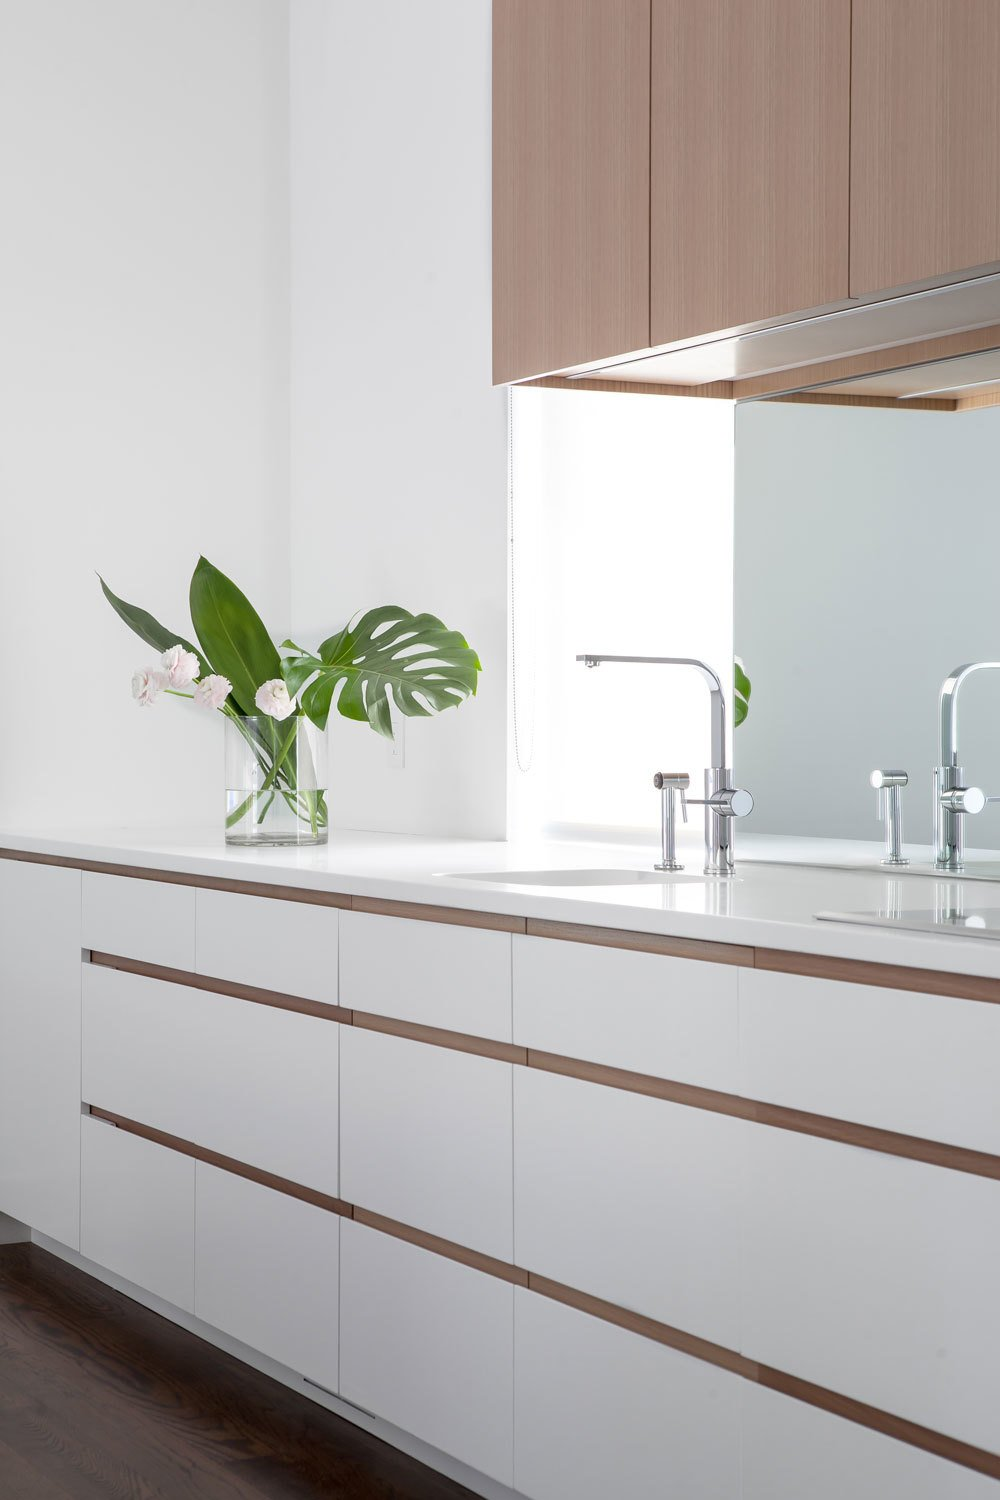 Mirrored backsplash deflects light from the opposite window and softens a typically, hard, utilitarian surface. Tagged: Kitchen, Quartzite, White, Wood, Light Hardwood, Mirror, Recessed, Undermount, and Medium Hardwood.  Best Kitchen Medium Hardwood Mirror Photos from Coach House